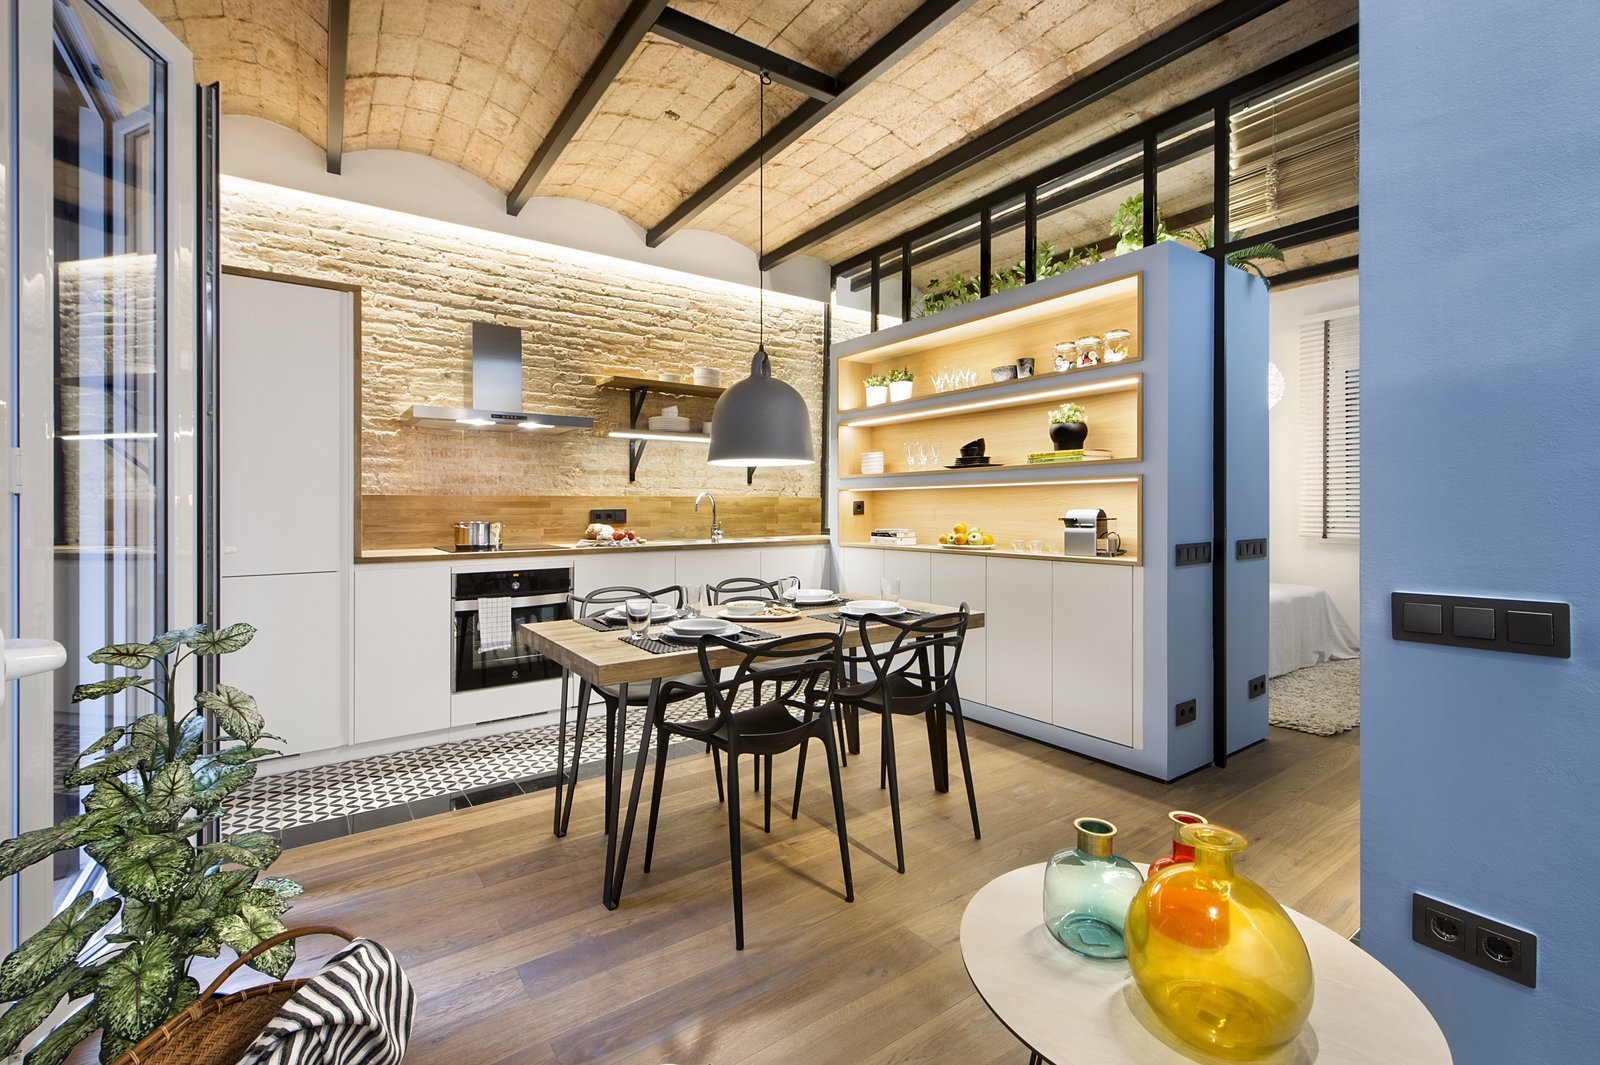 Tagged: Kitchen, Wood Counter, Light Hardwood Floor, Pendant Lighting, Wood Backsplashe, Wall Oven, Ceiling Lighting, Range Hood, Range, Drop In Sink, and Ceramic Tile Floor. A Smart Layout Maximizes Space in This Compact Urban Beach Apartment in Barcelona - Photo 9 of 11